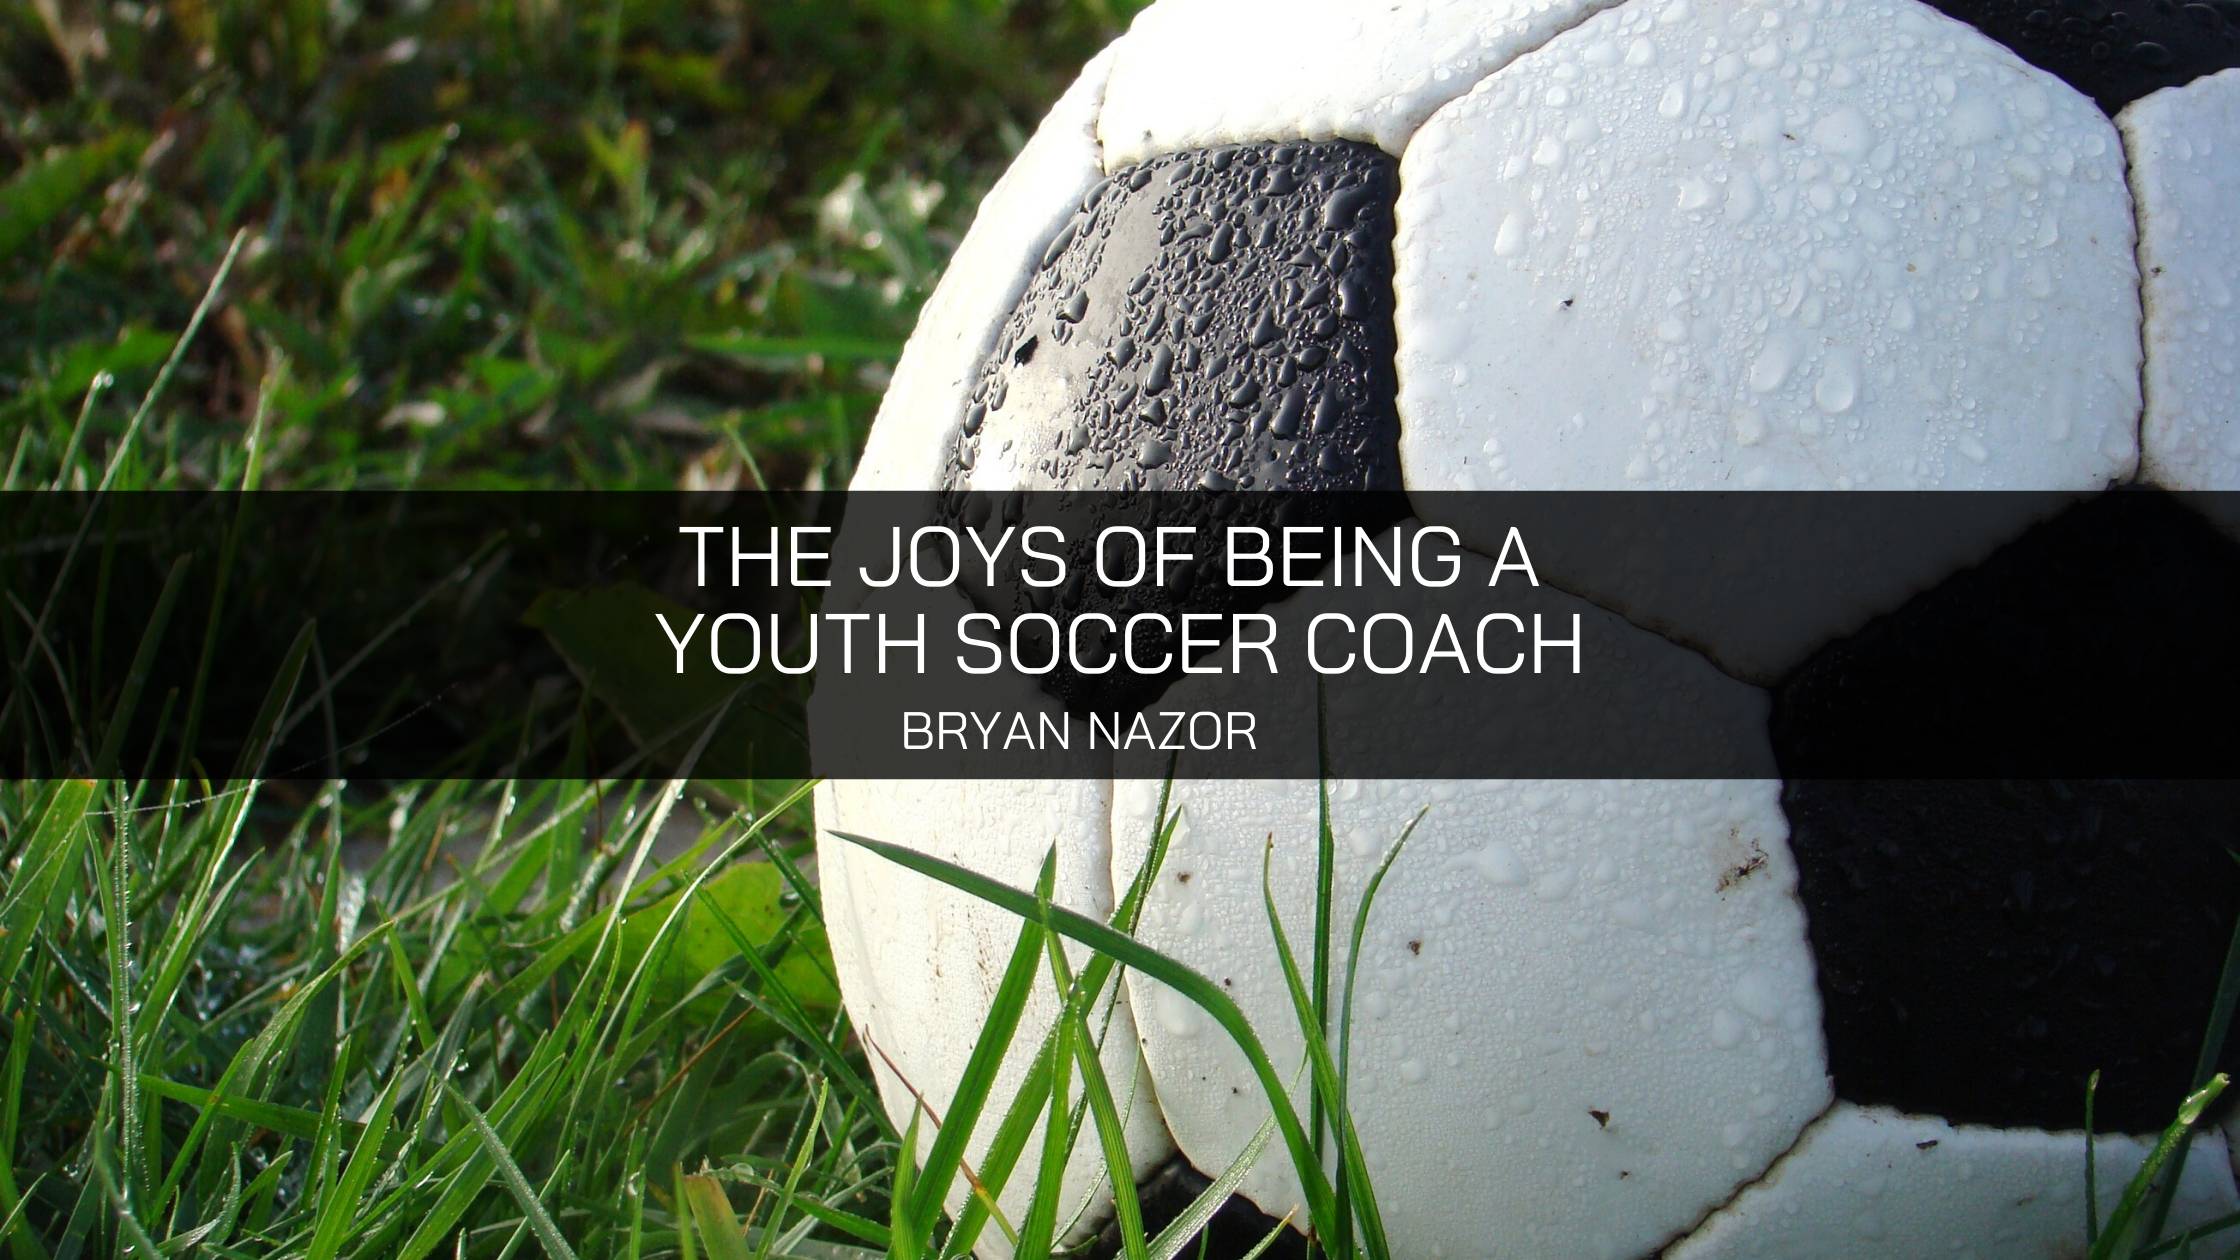 Bryan Nazor: The Joys of Being a Youth Soccer Coach